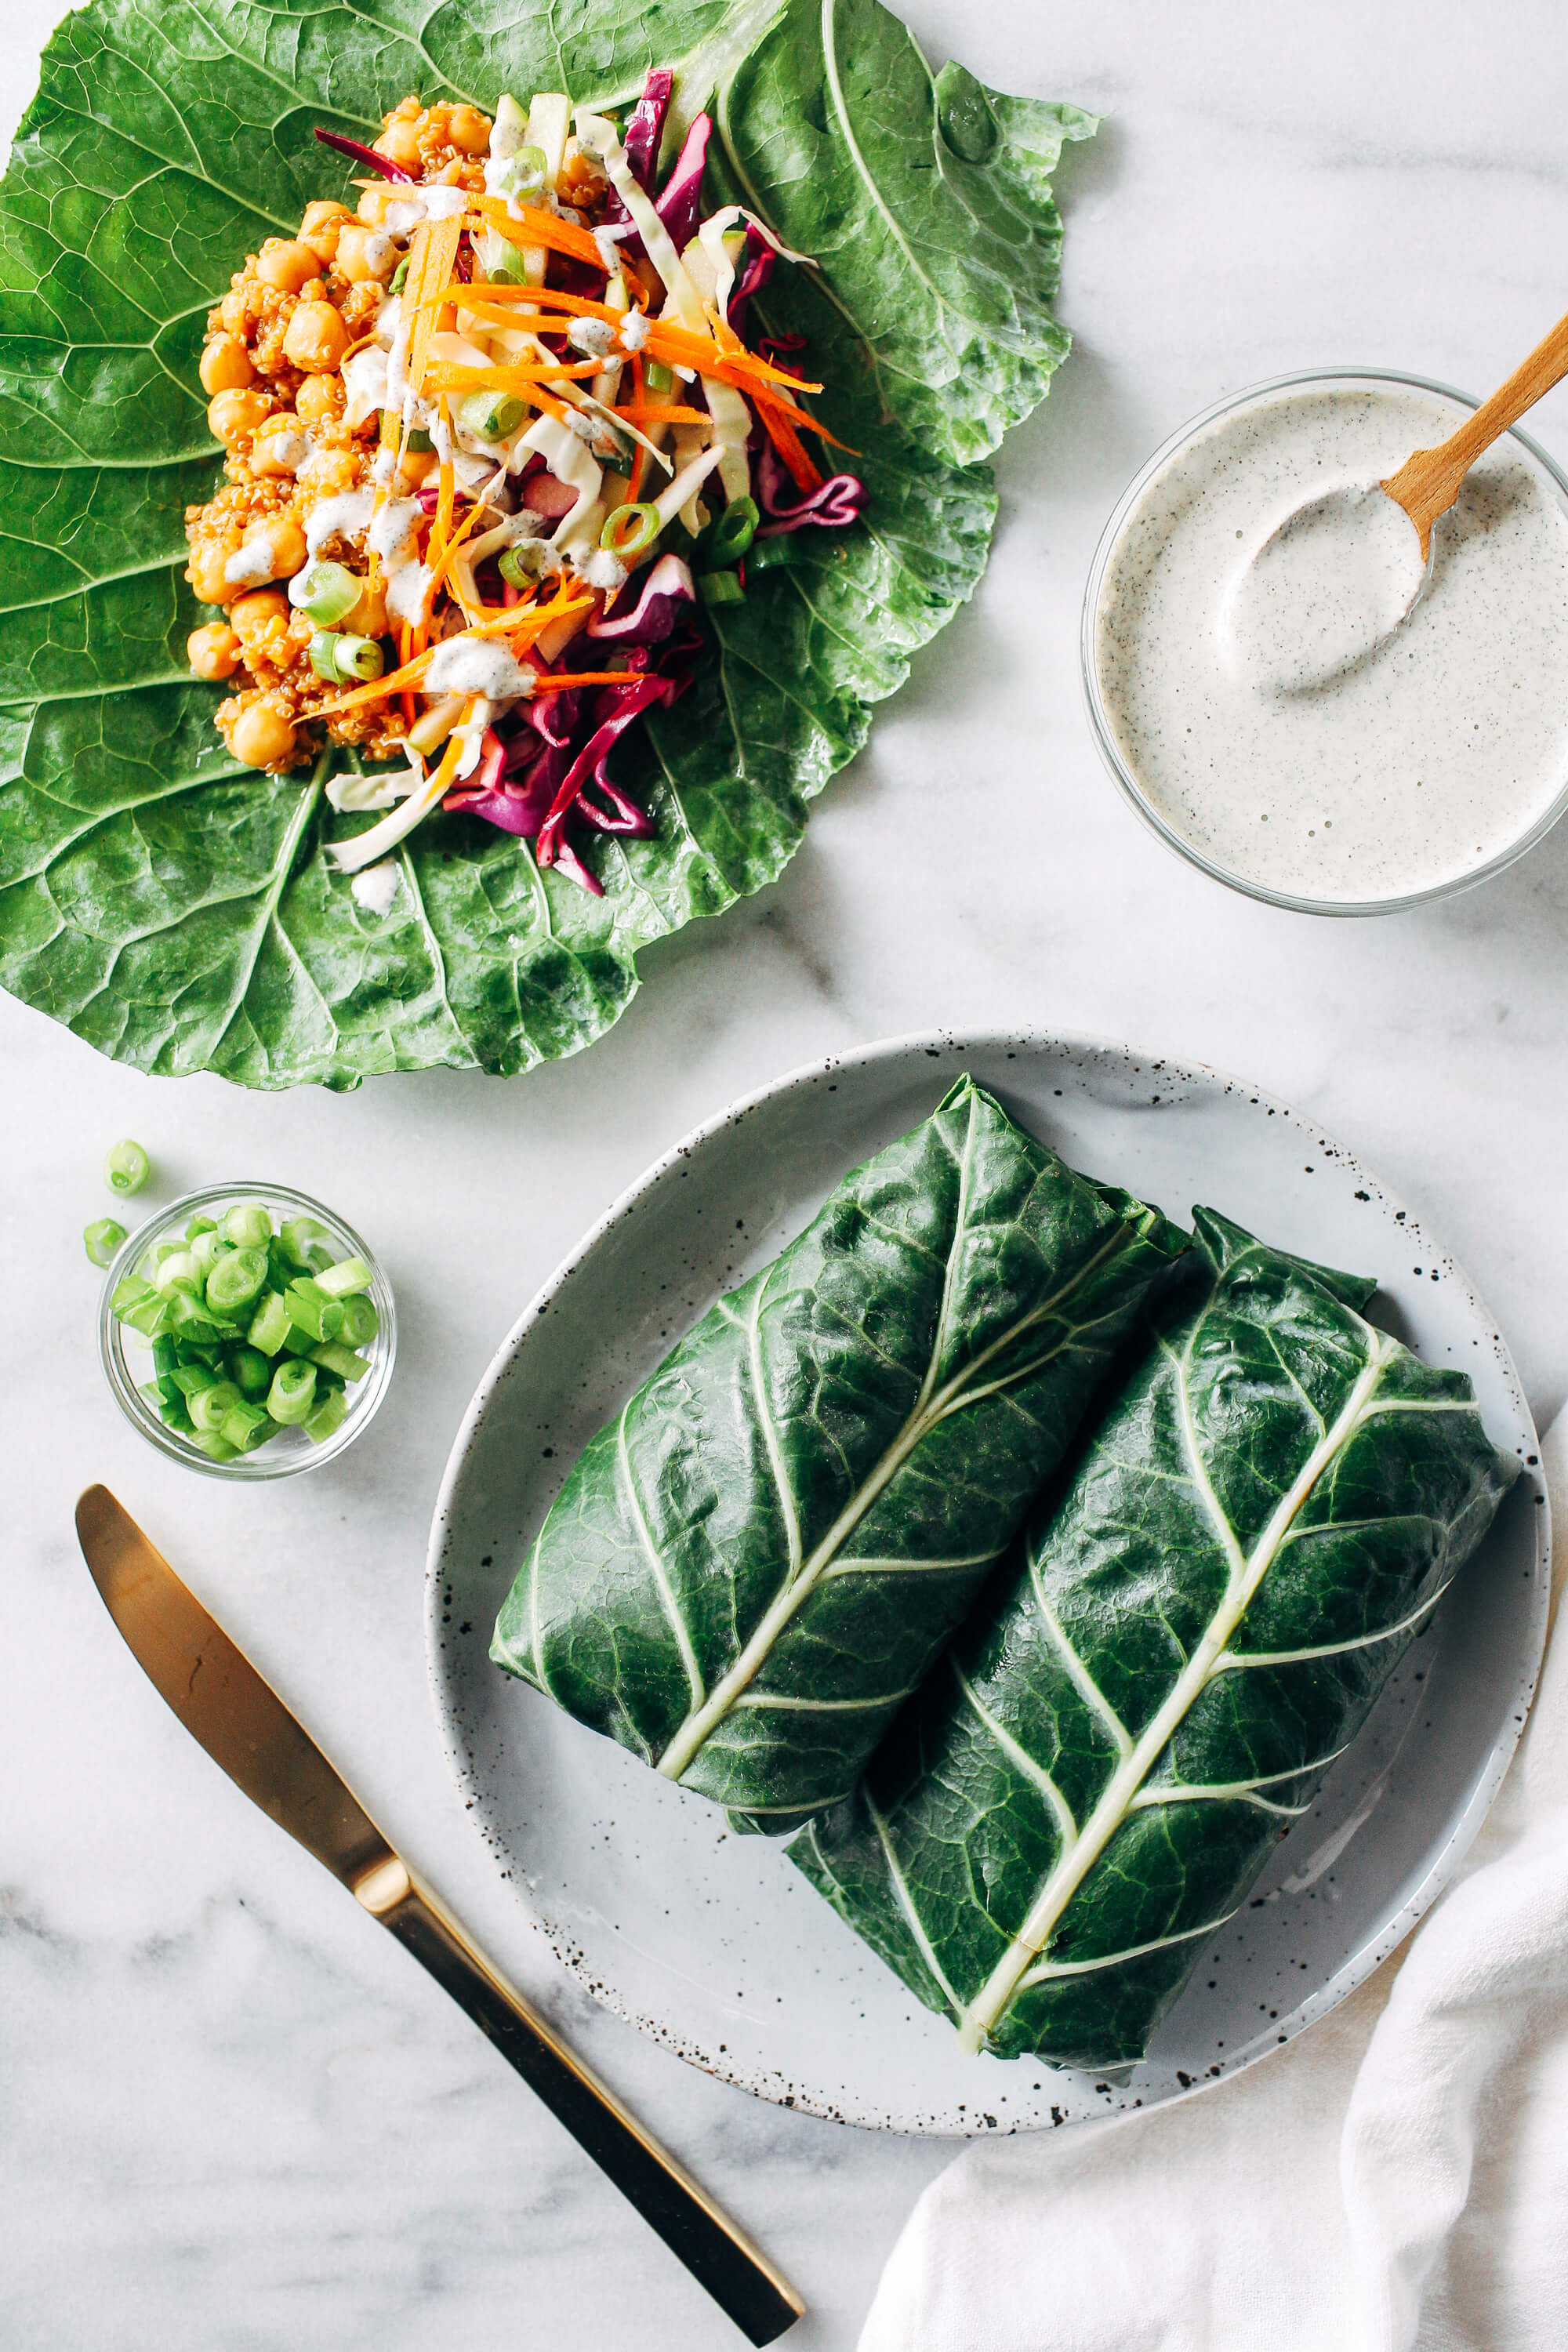 BBQ Chickpea Collard Wraps with Ranch Dressing